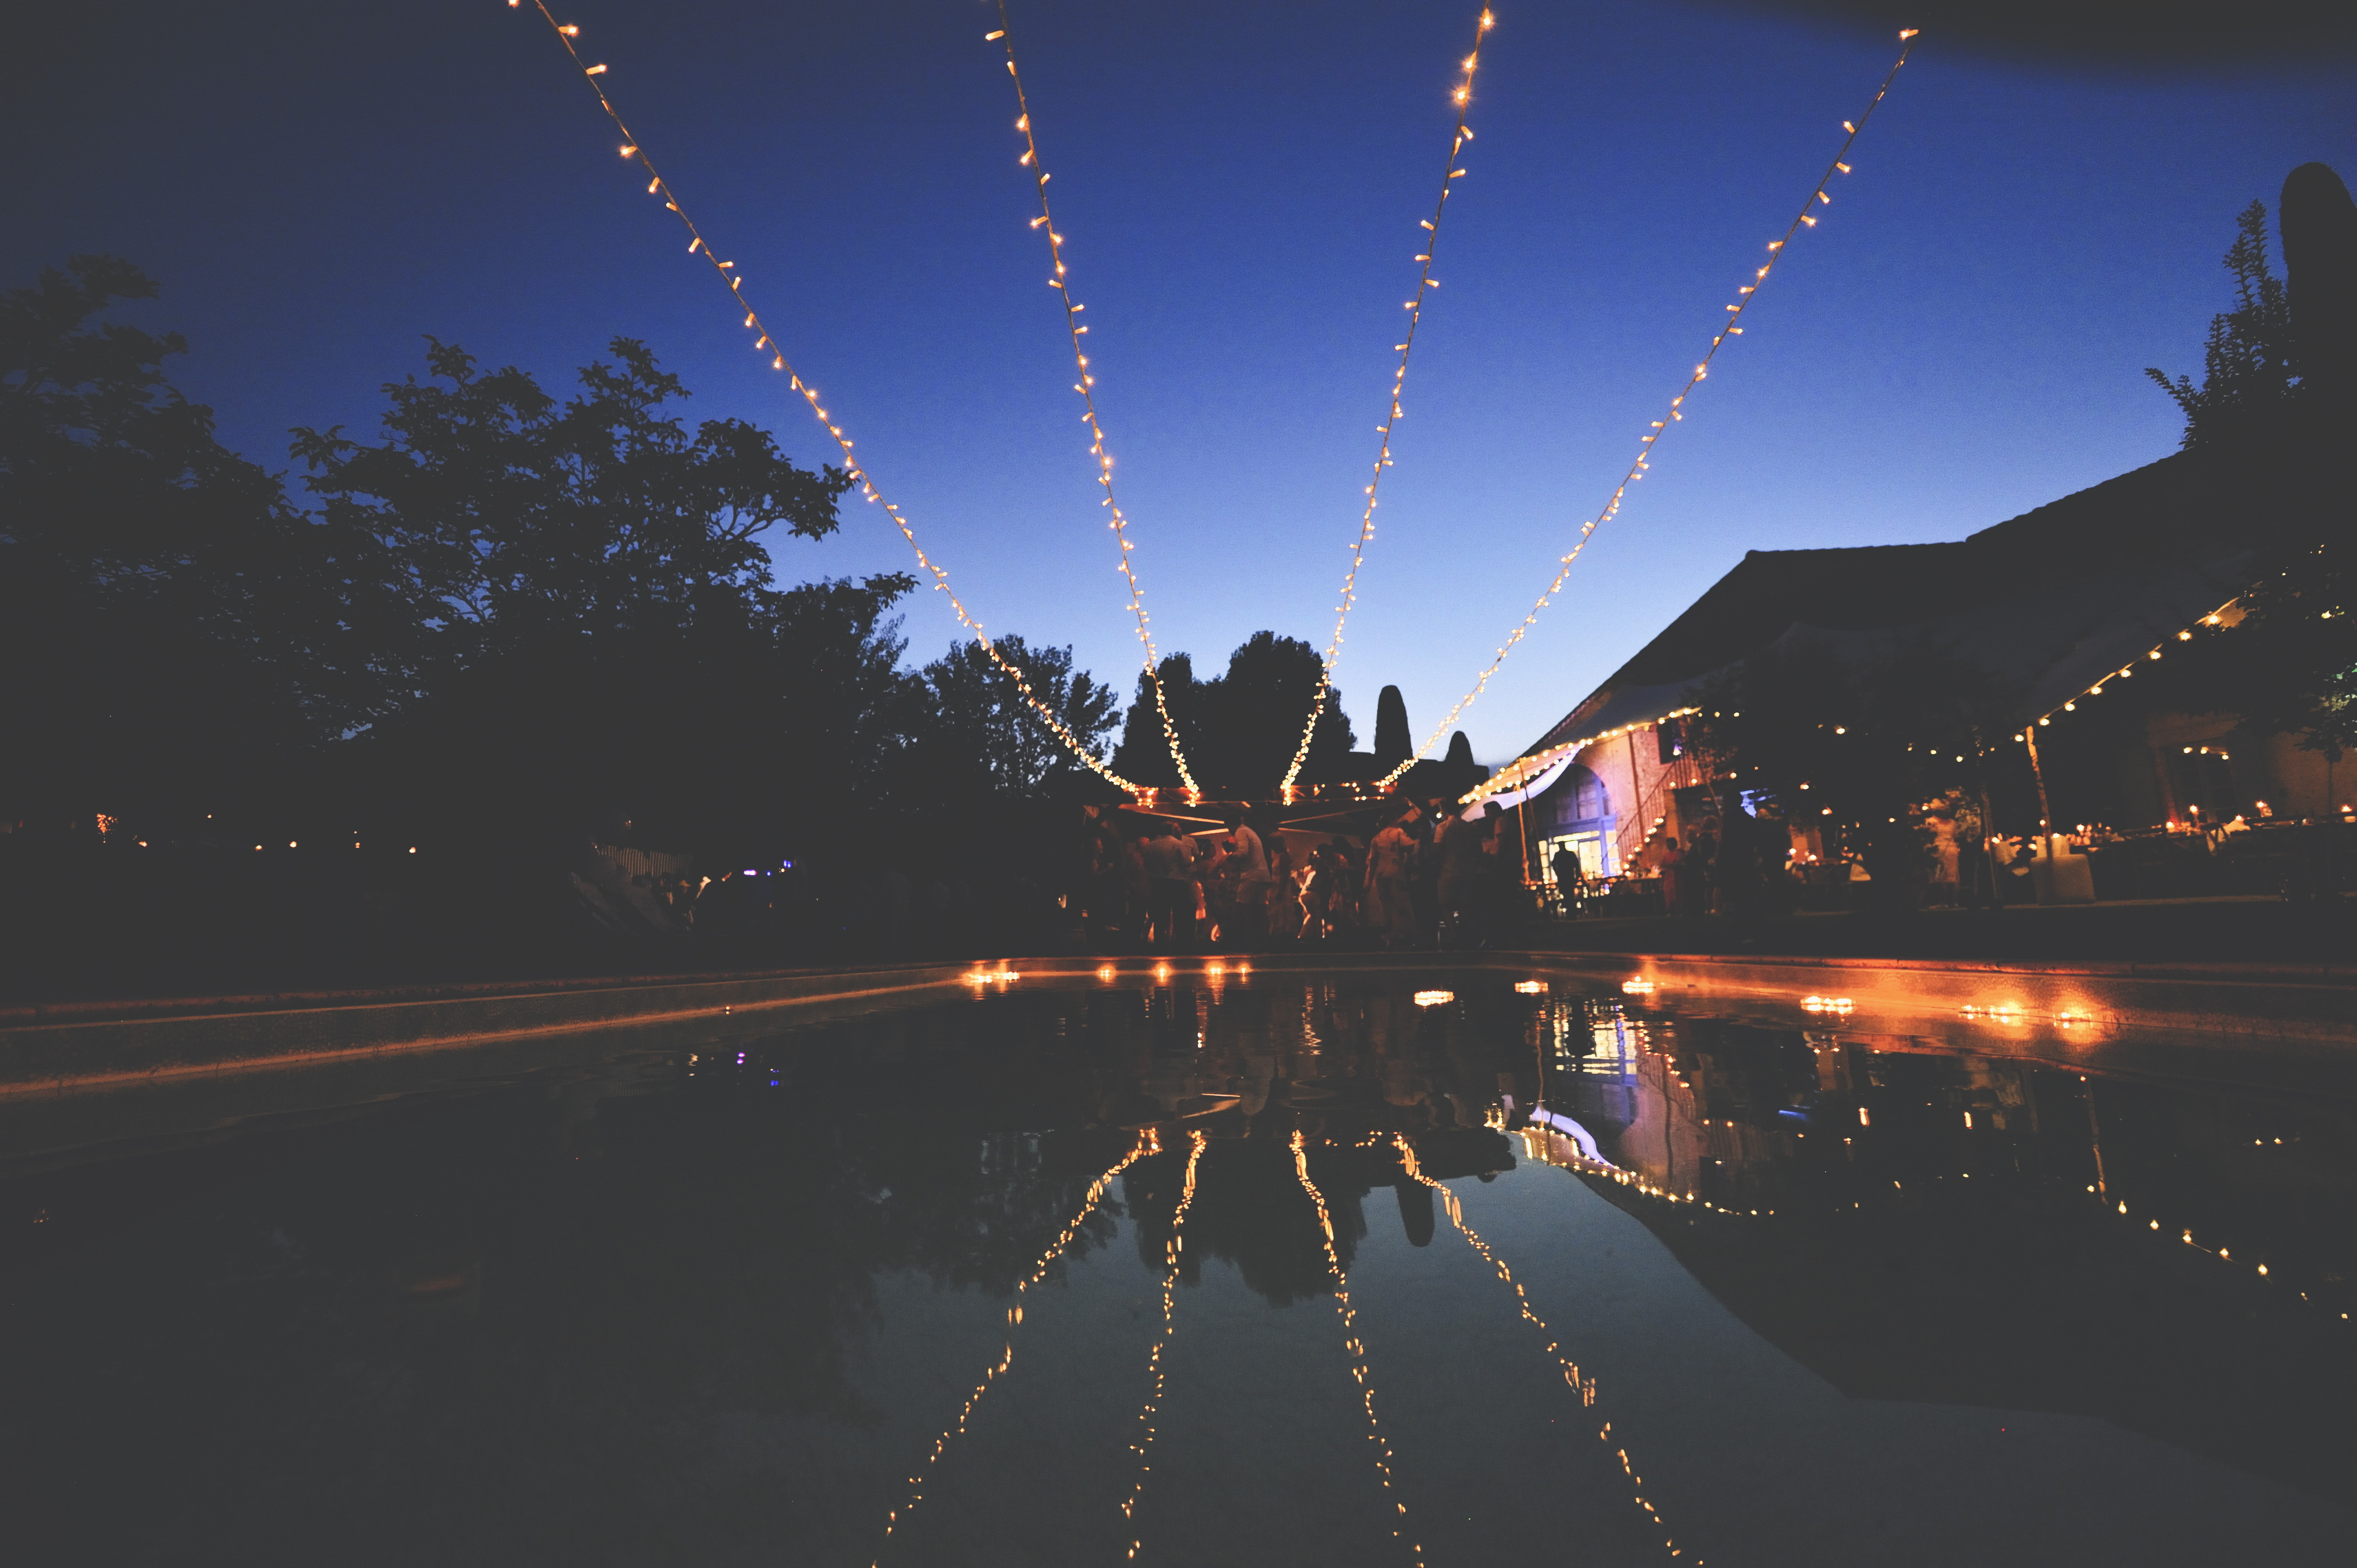 Outdoor wedding party fairy lights